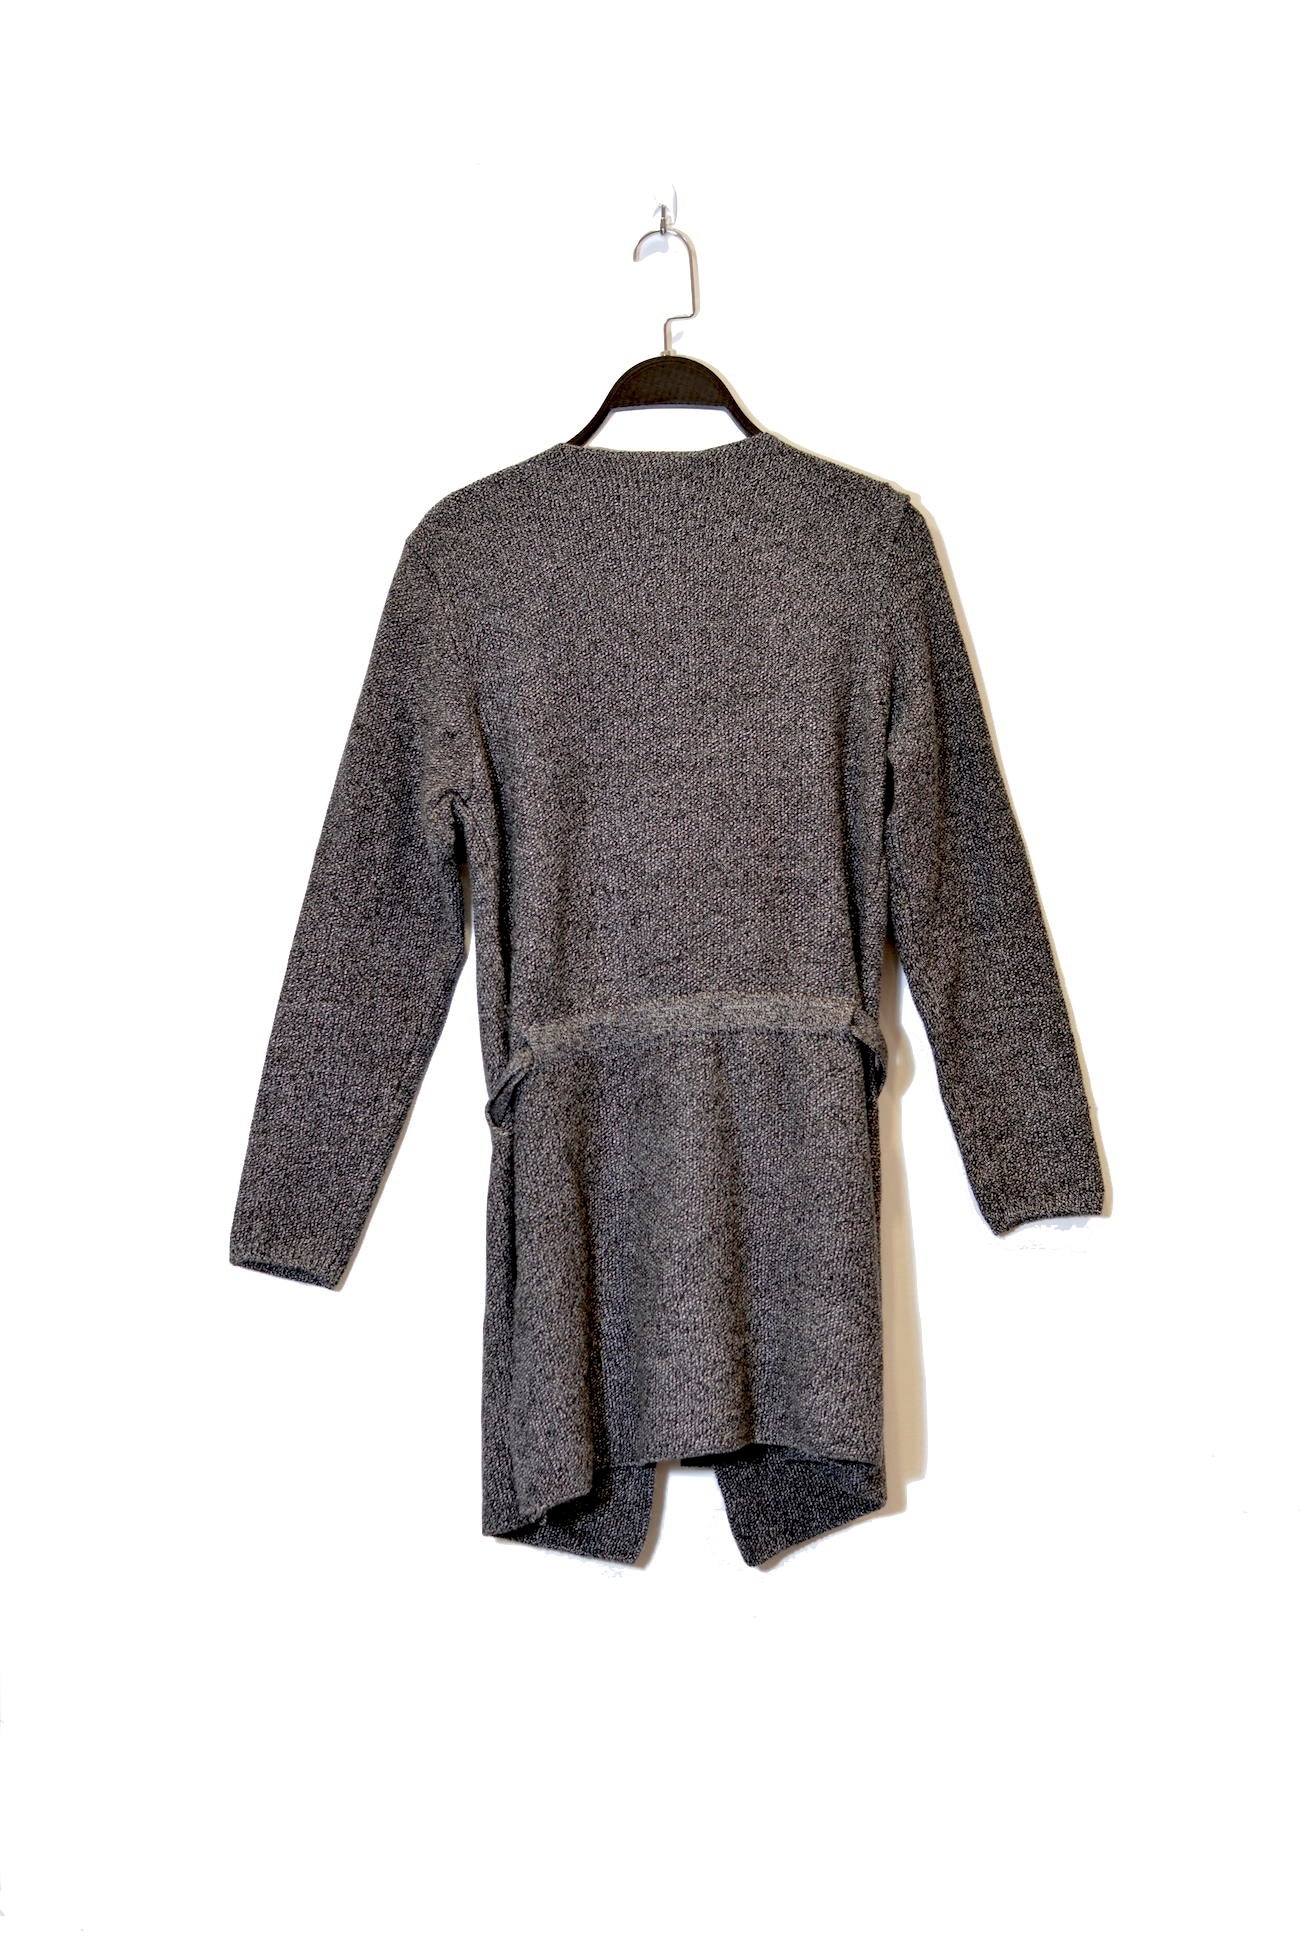 Grey Open Front Cardigan With Tie Belt And Black Collar